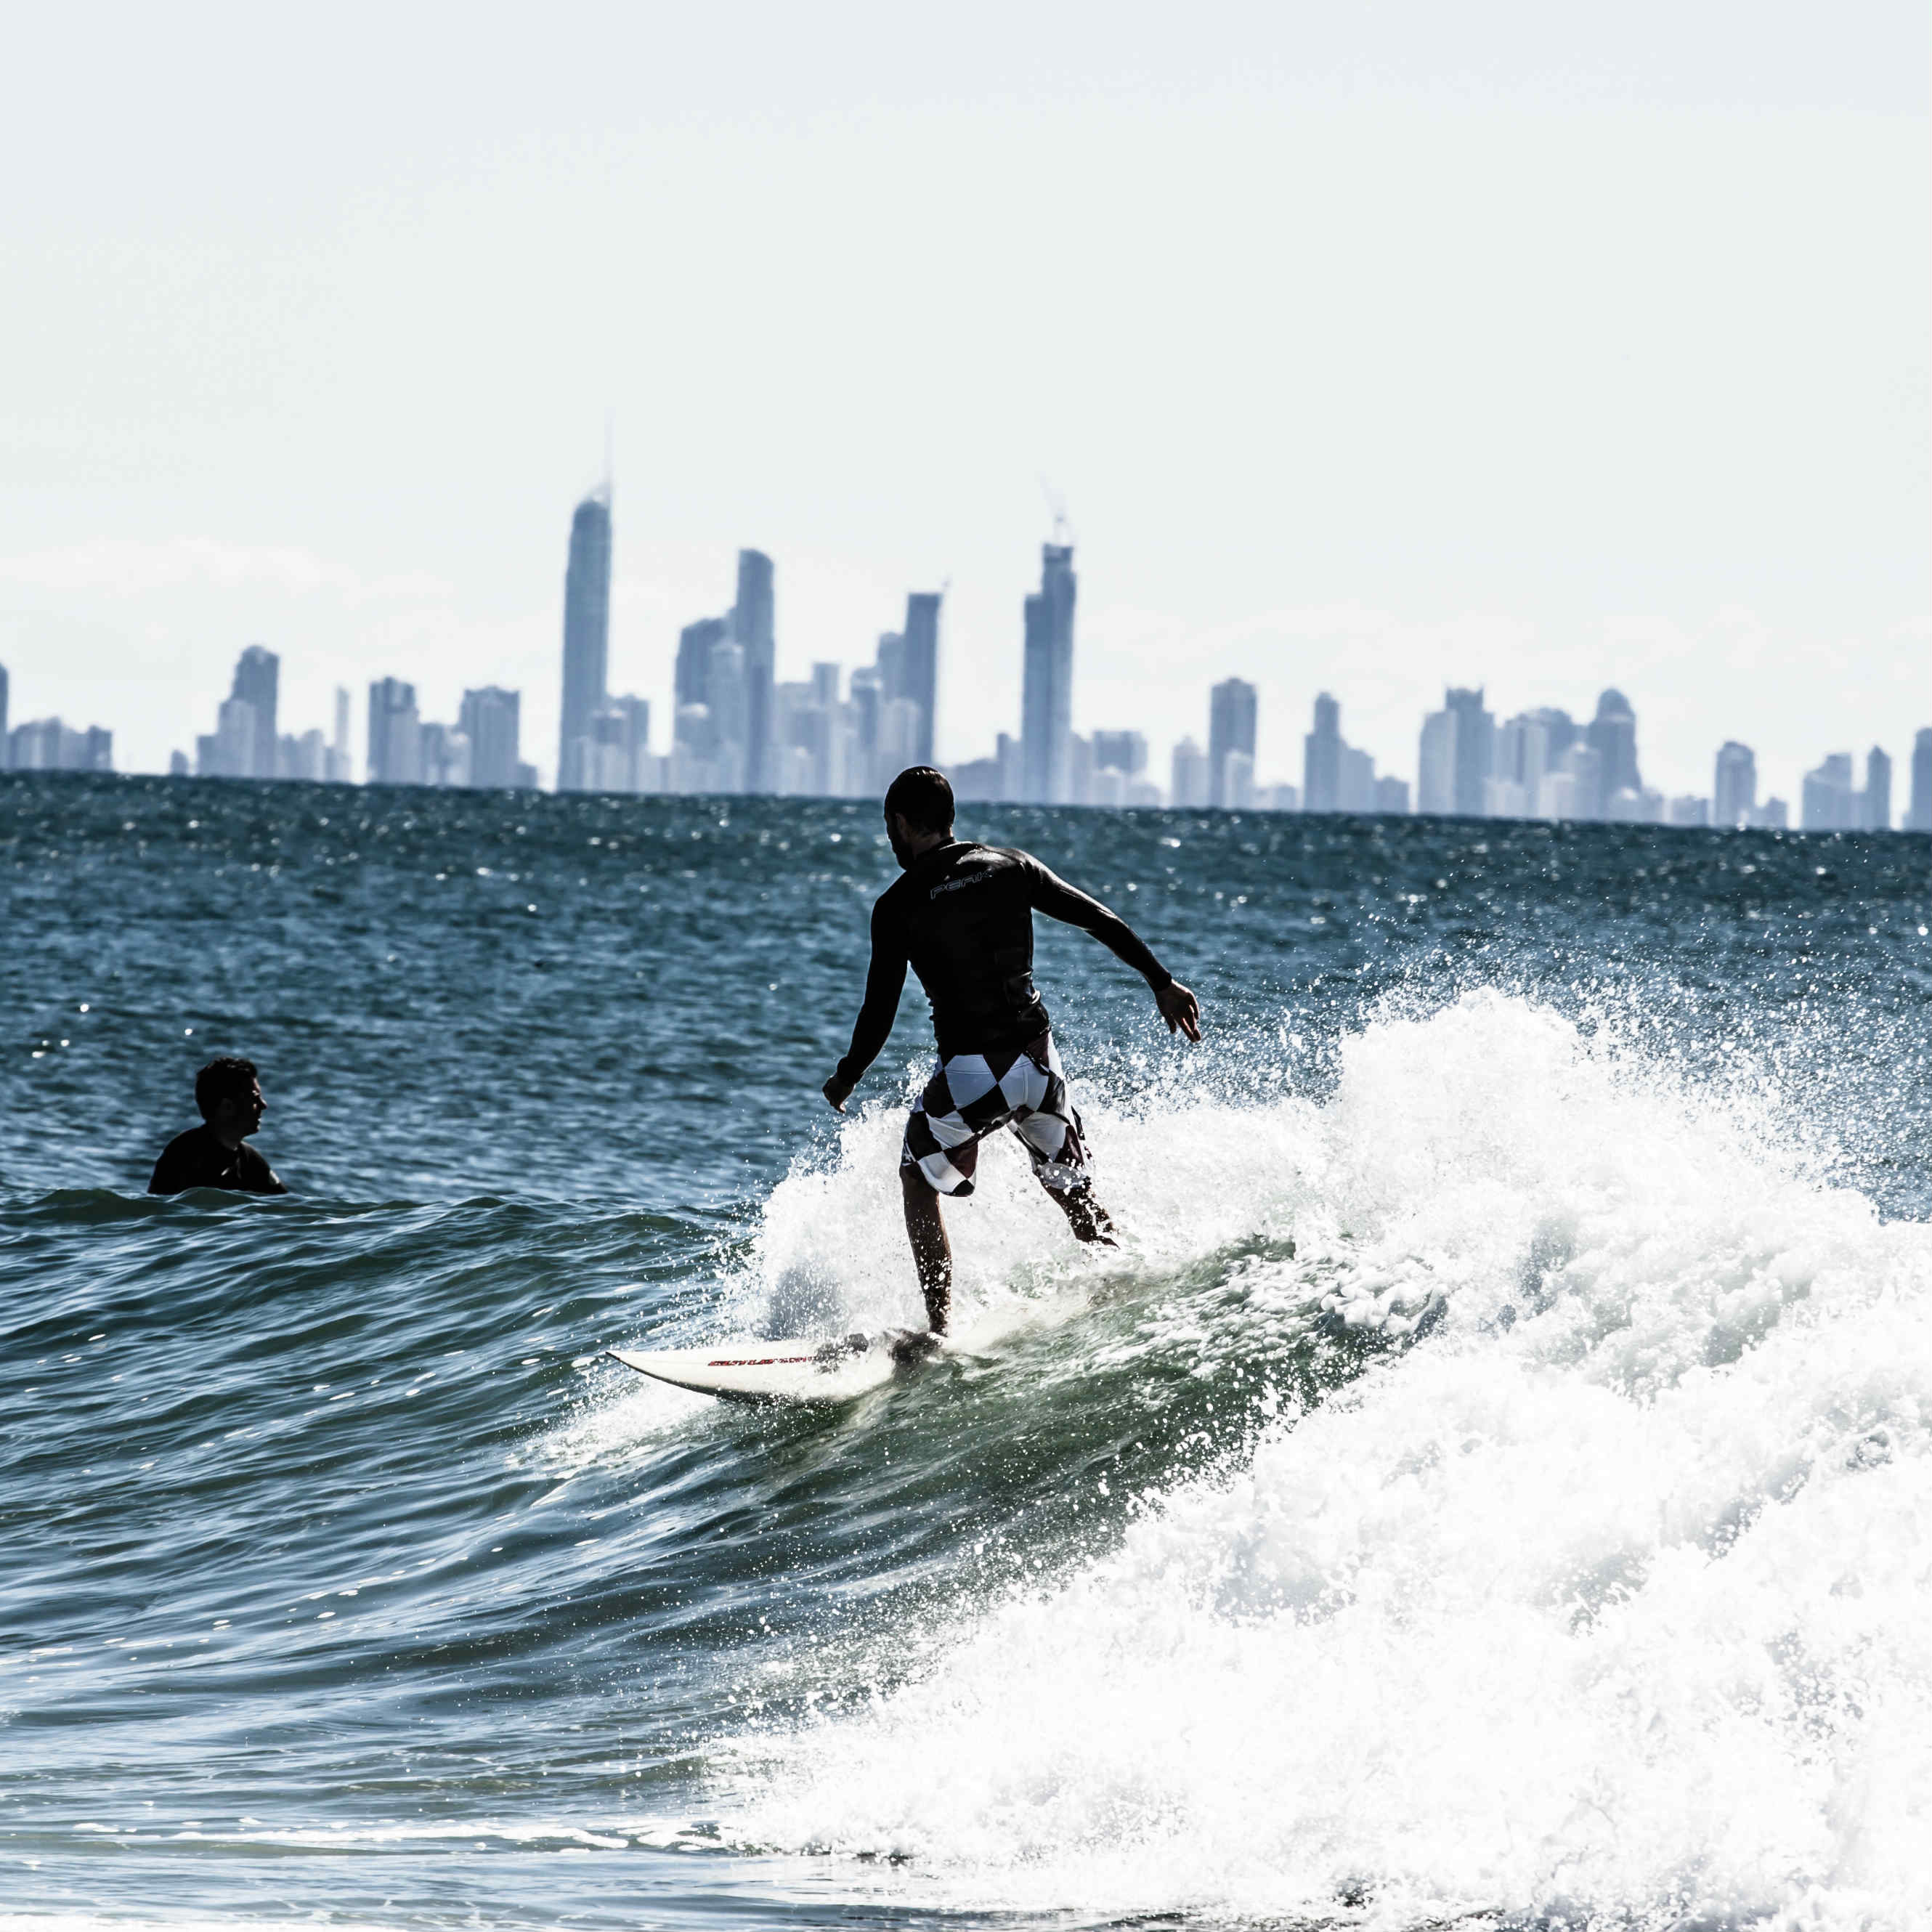 Surfing Gold Coast Australia